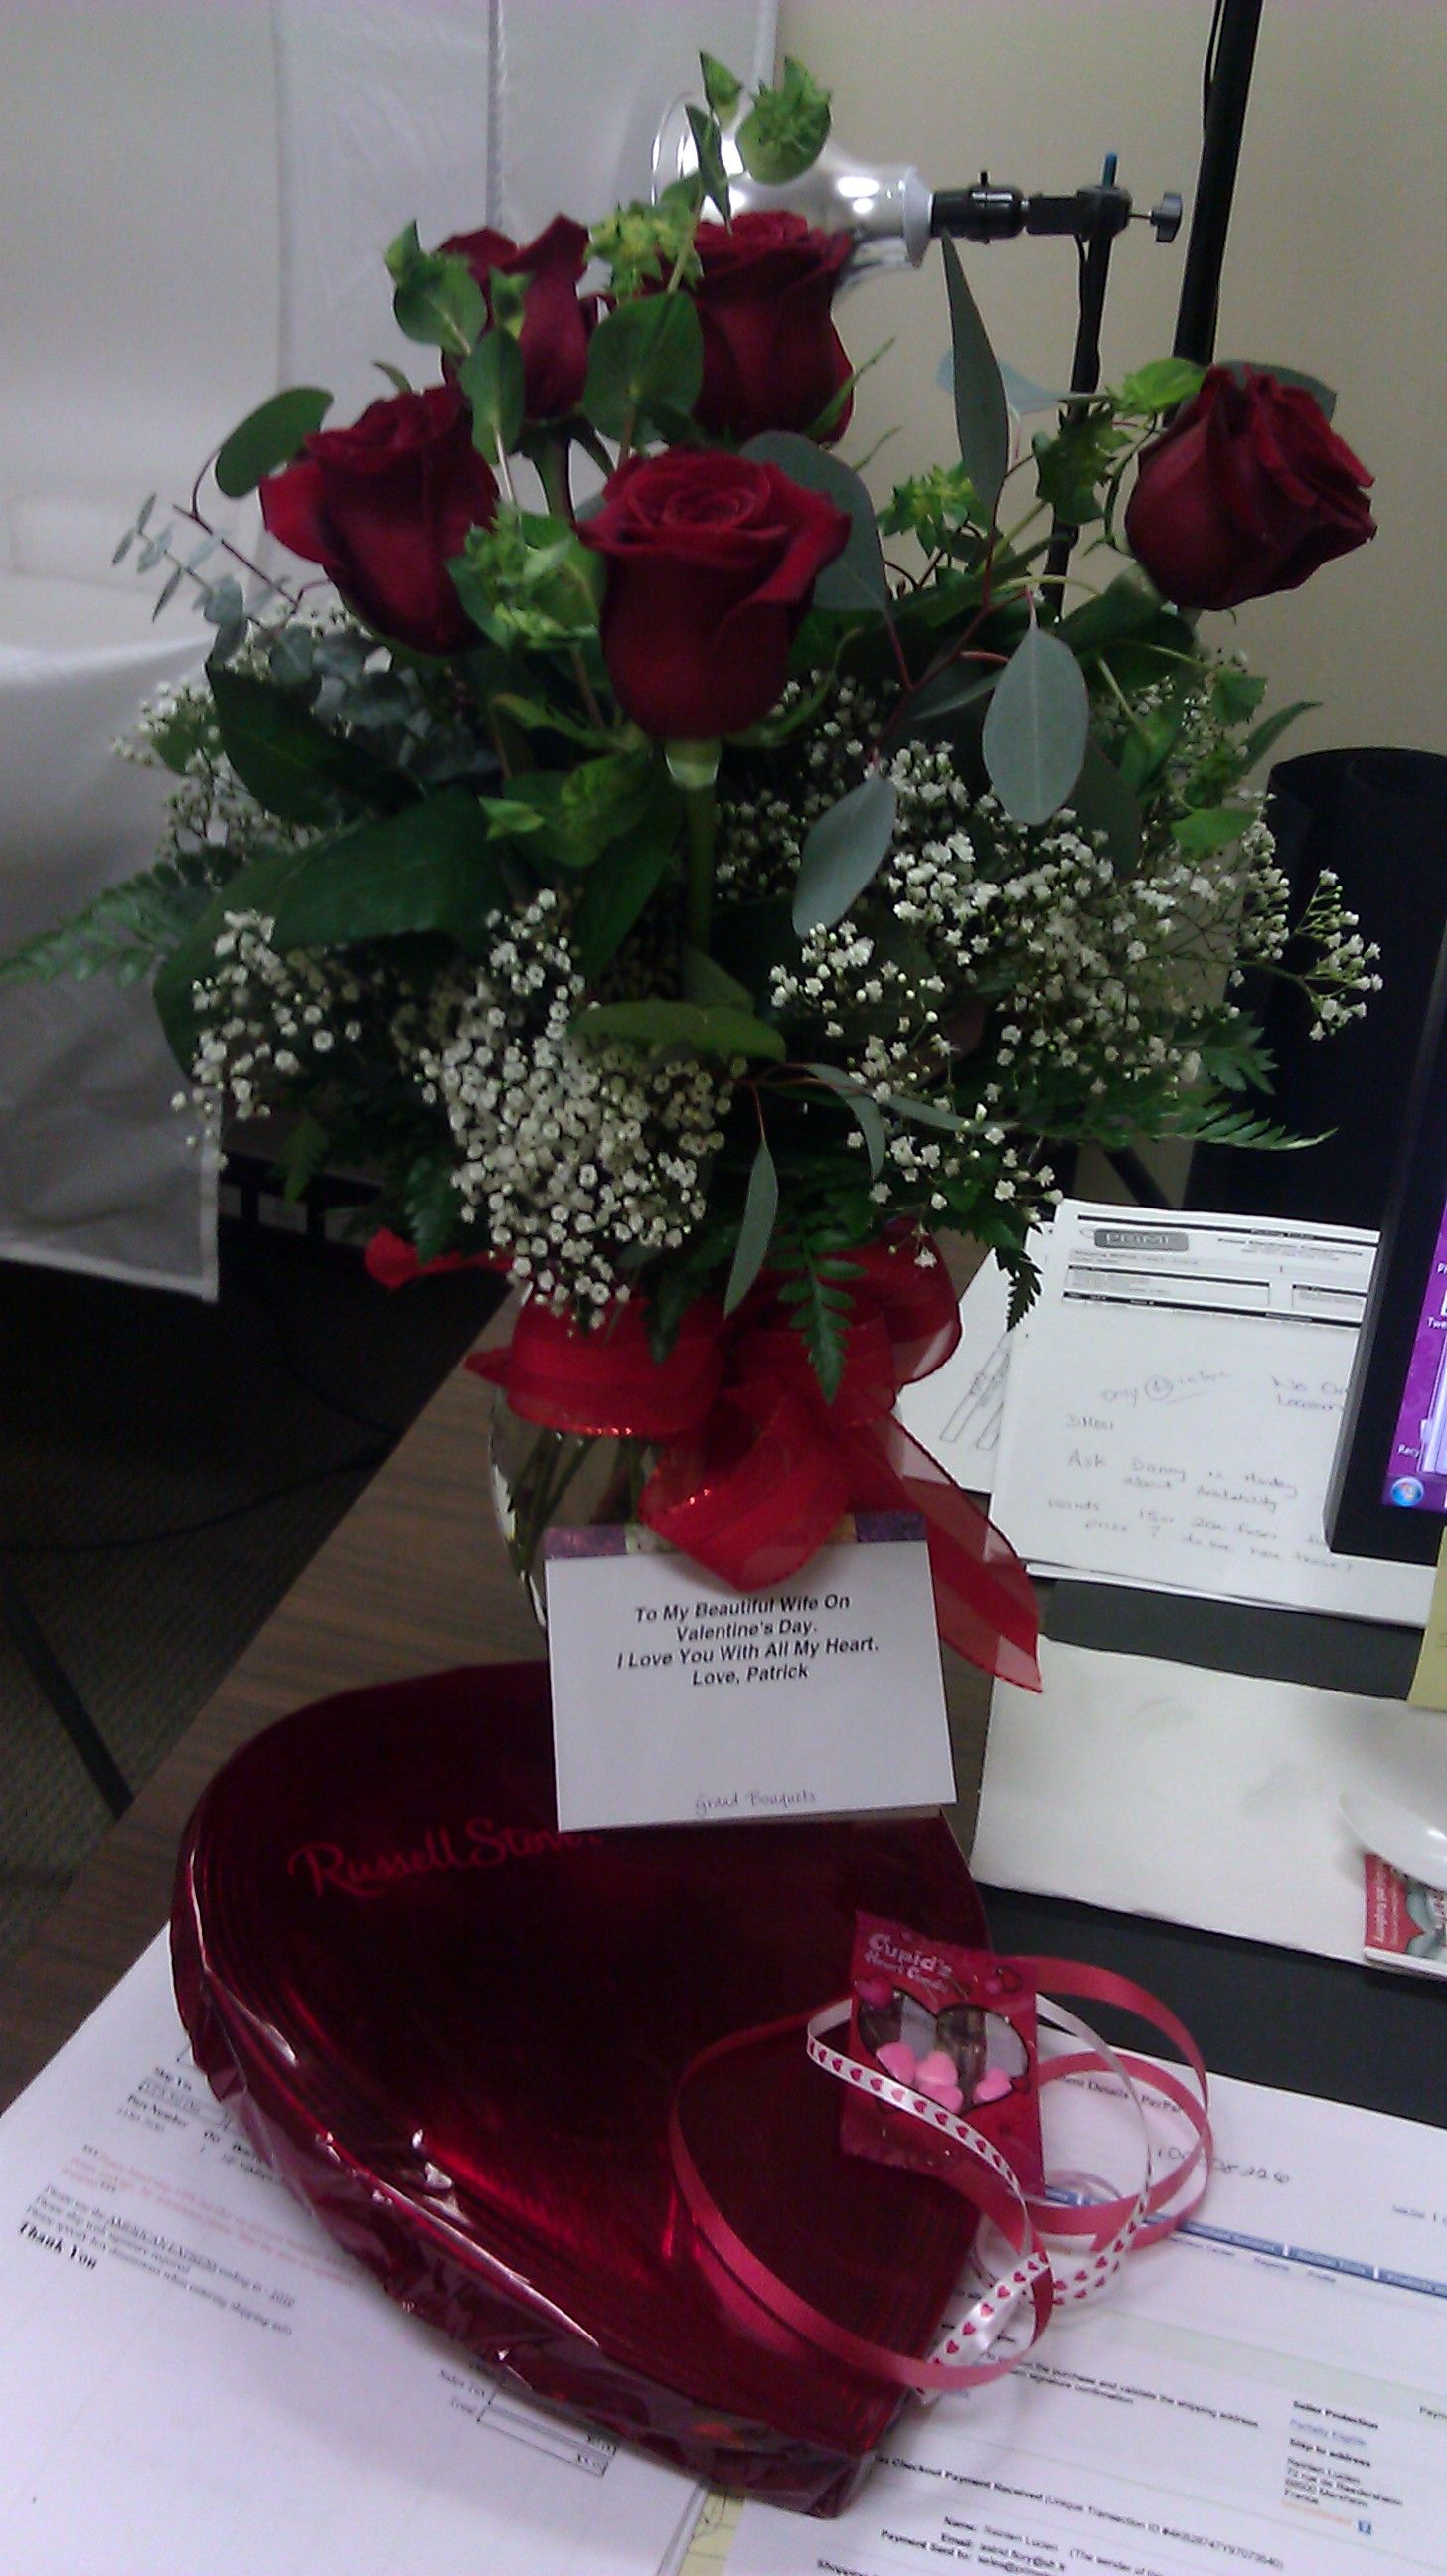 Valentines Day Flowers And Chocolates From My Hubby Patrick